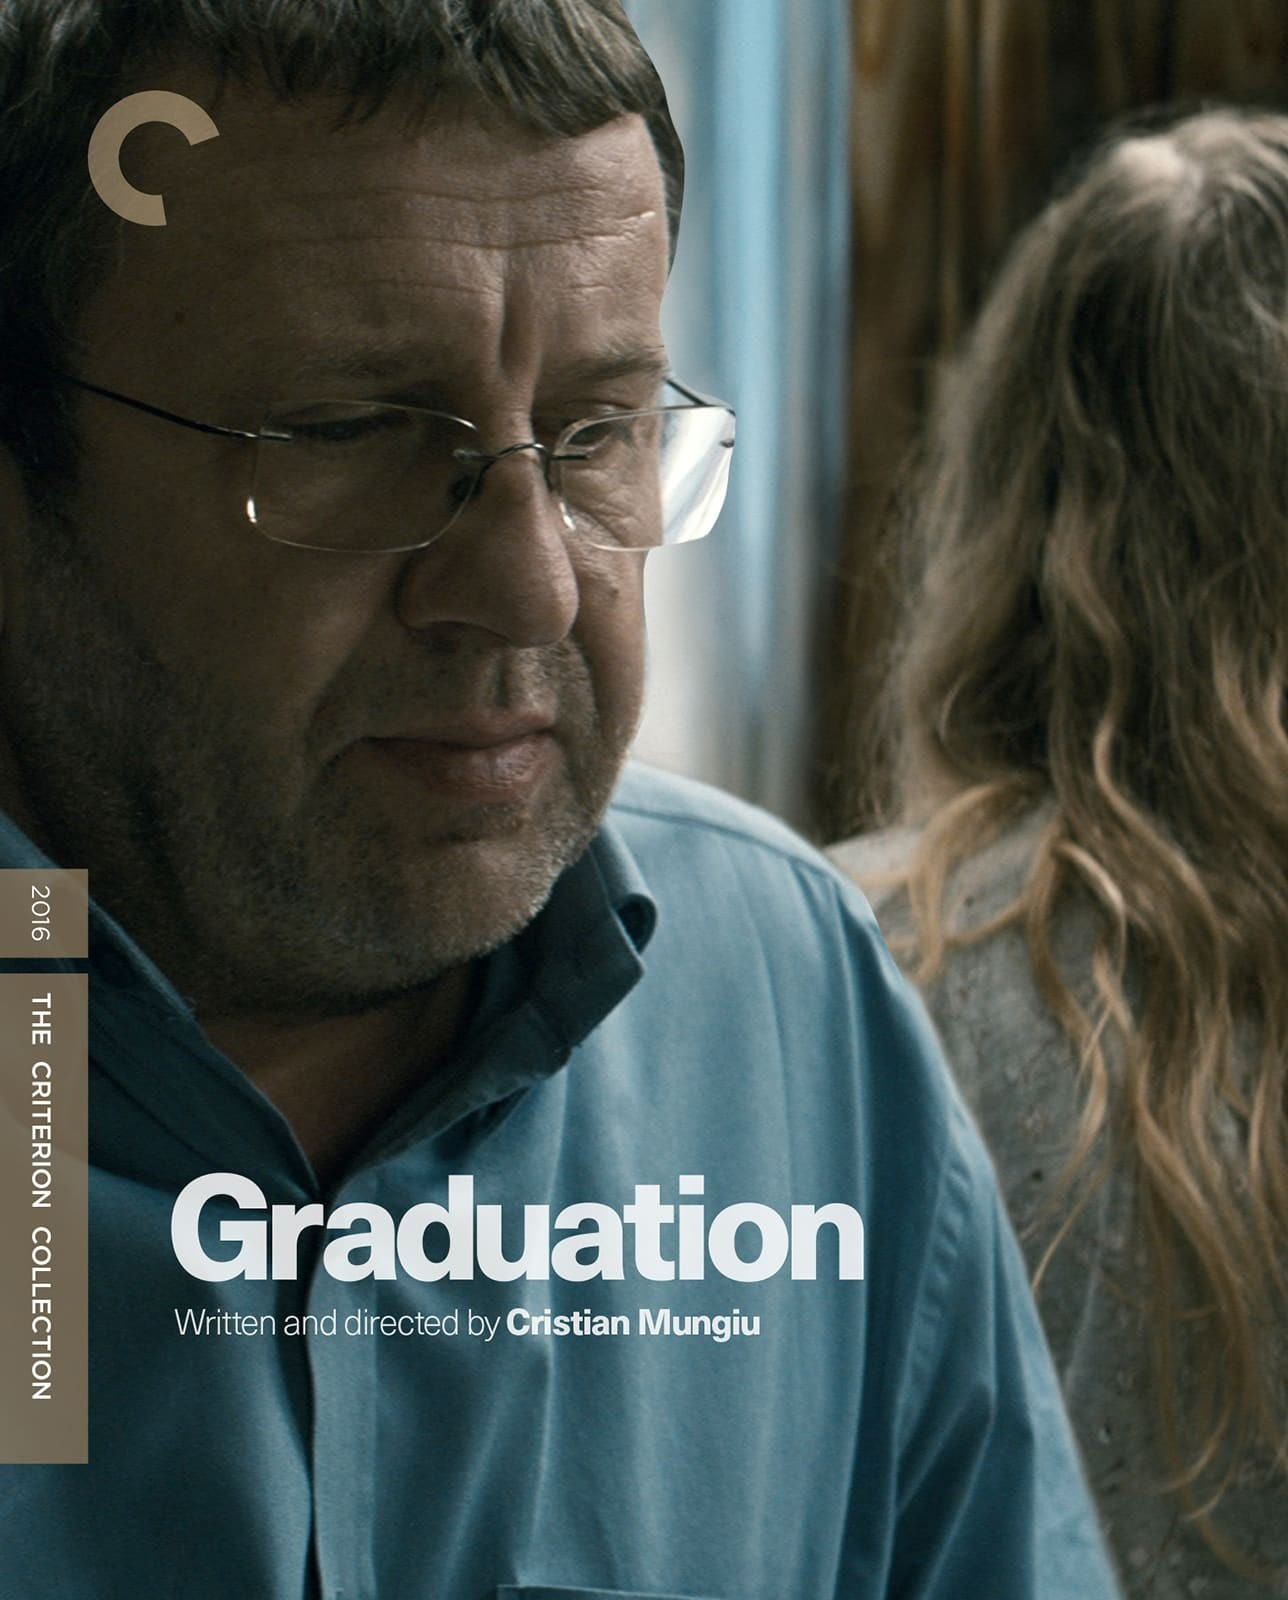 Graduation (The Criterion Collection)(2016) Blu-ray